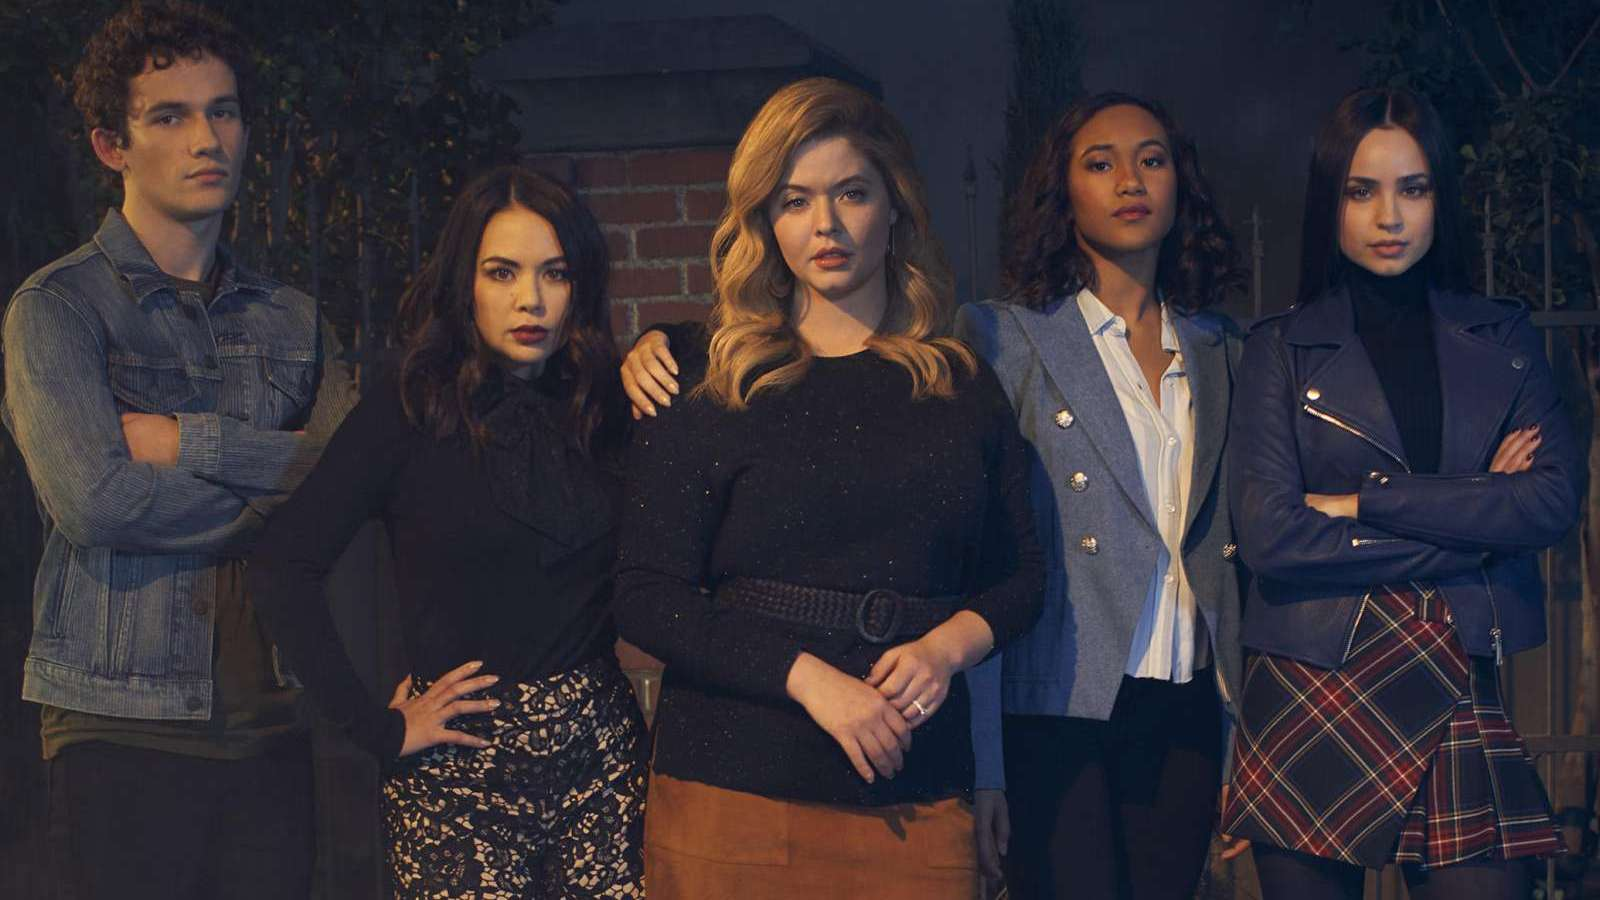 How To Watch The New Pretty Little Liars The Perfectionists Live